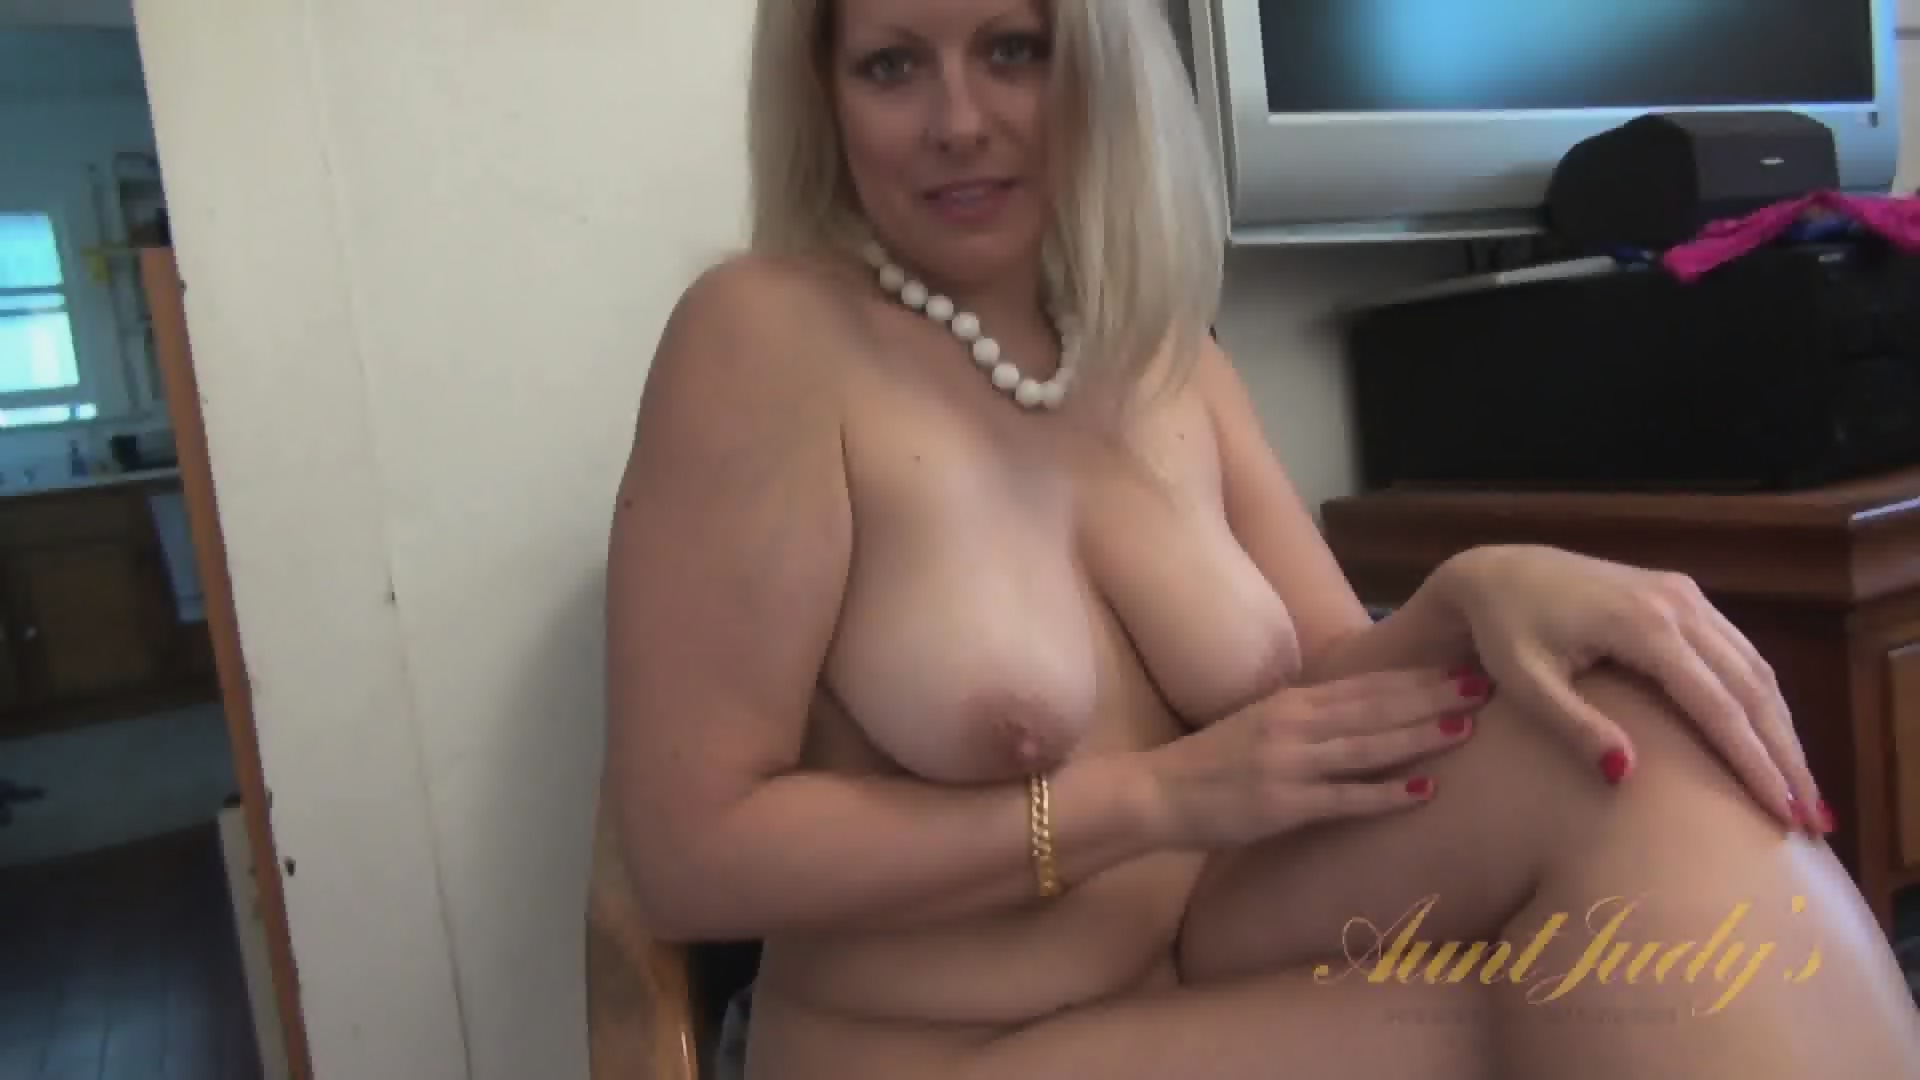 middle aged women looking for sex